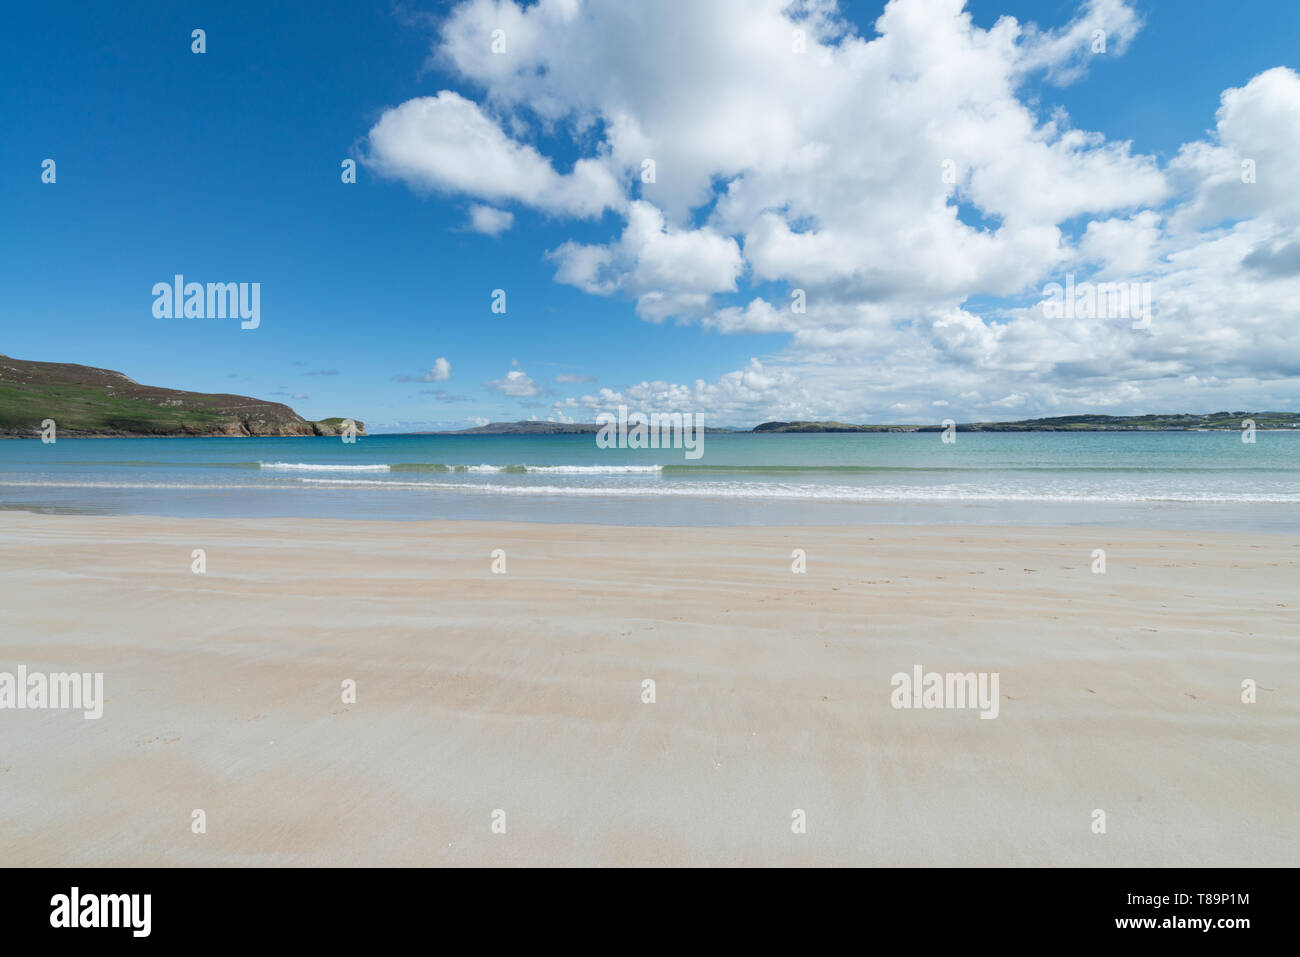 Killahoey Beach at Dunfanaghy Bay at low tide, Donegal, Ireland - Stock Image